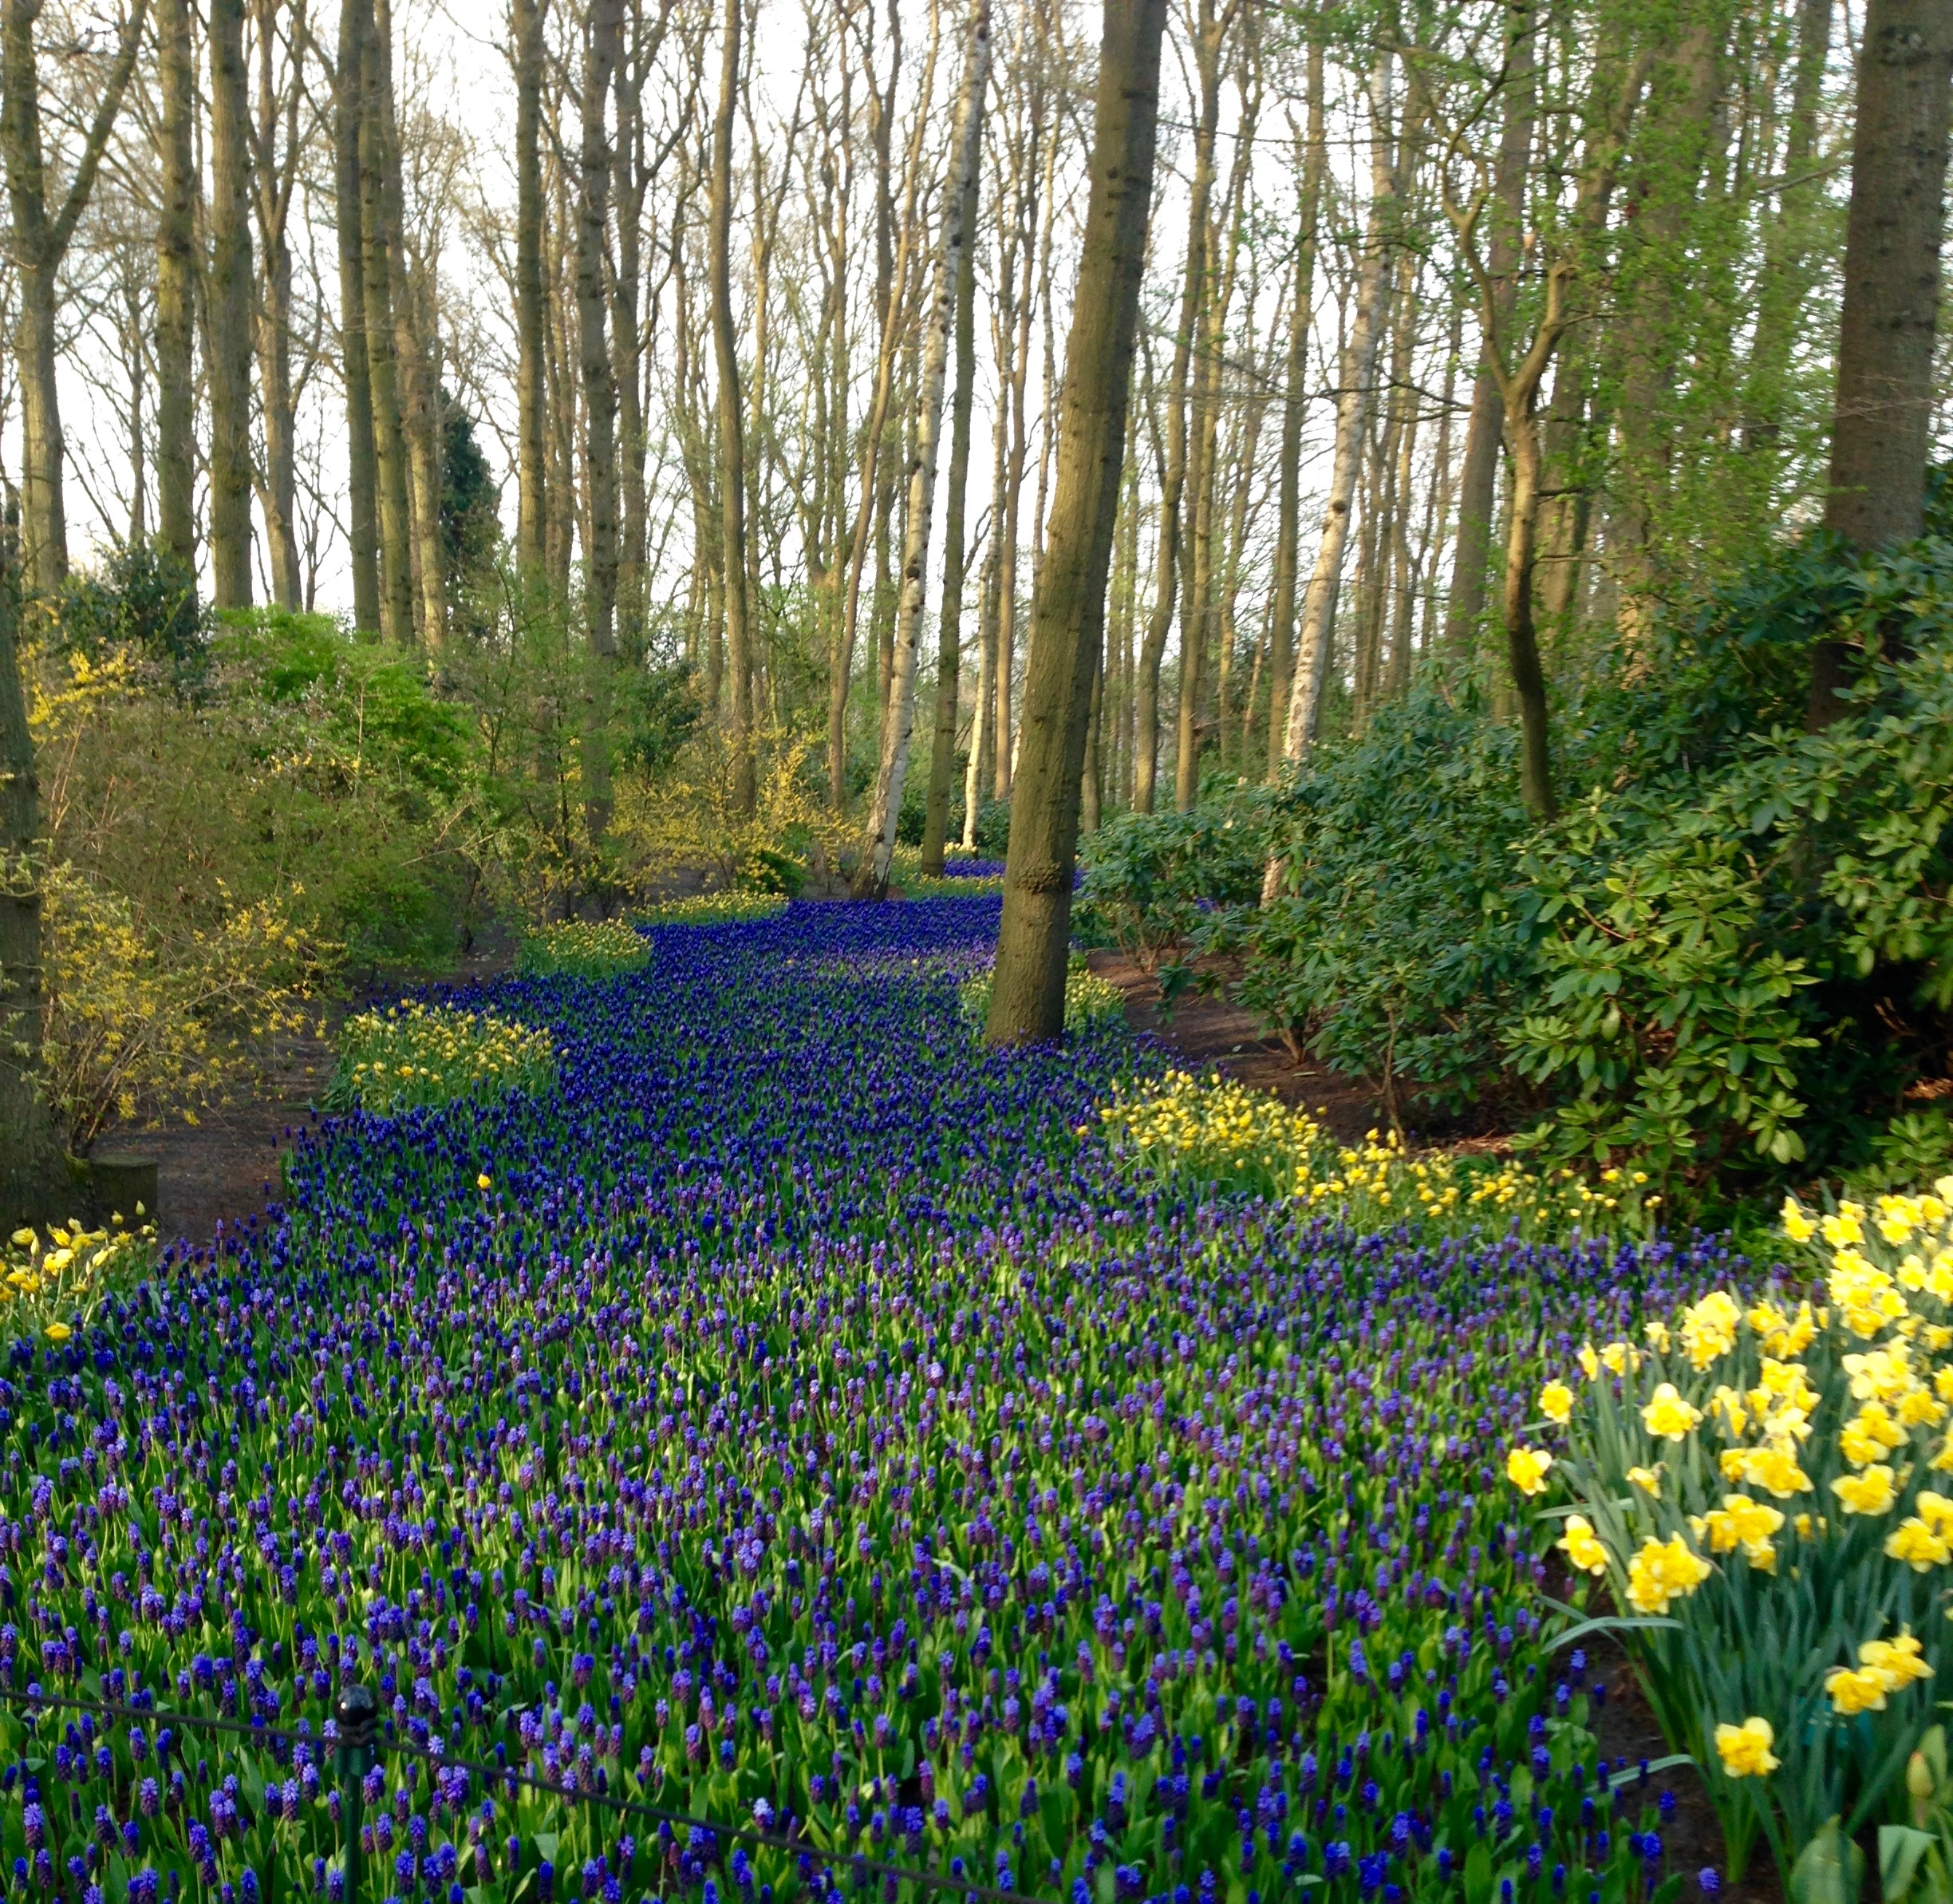 At Keukenhof a planting of a sea of blue Muscari and yellow Daffodils.